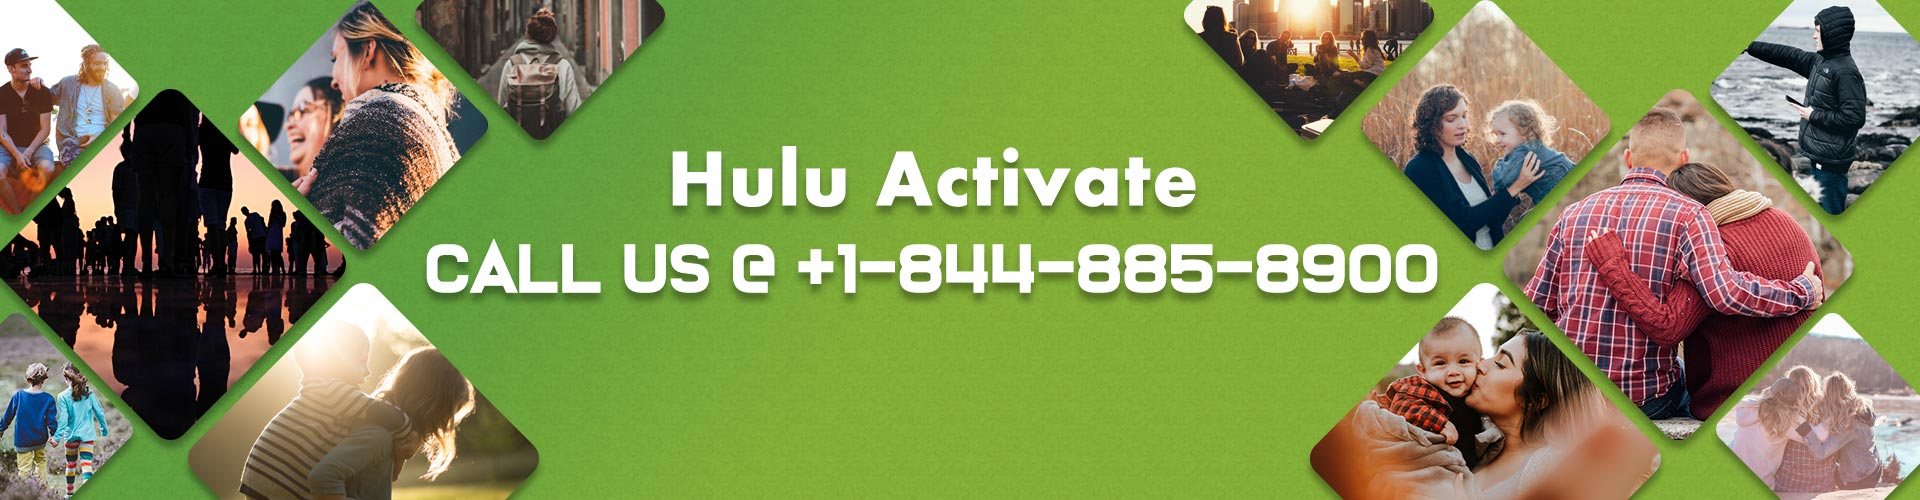 How to Activate Hulu on Roku Streaming Device? | Hulu com Activate image 1